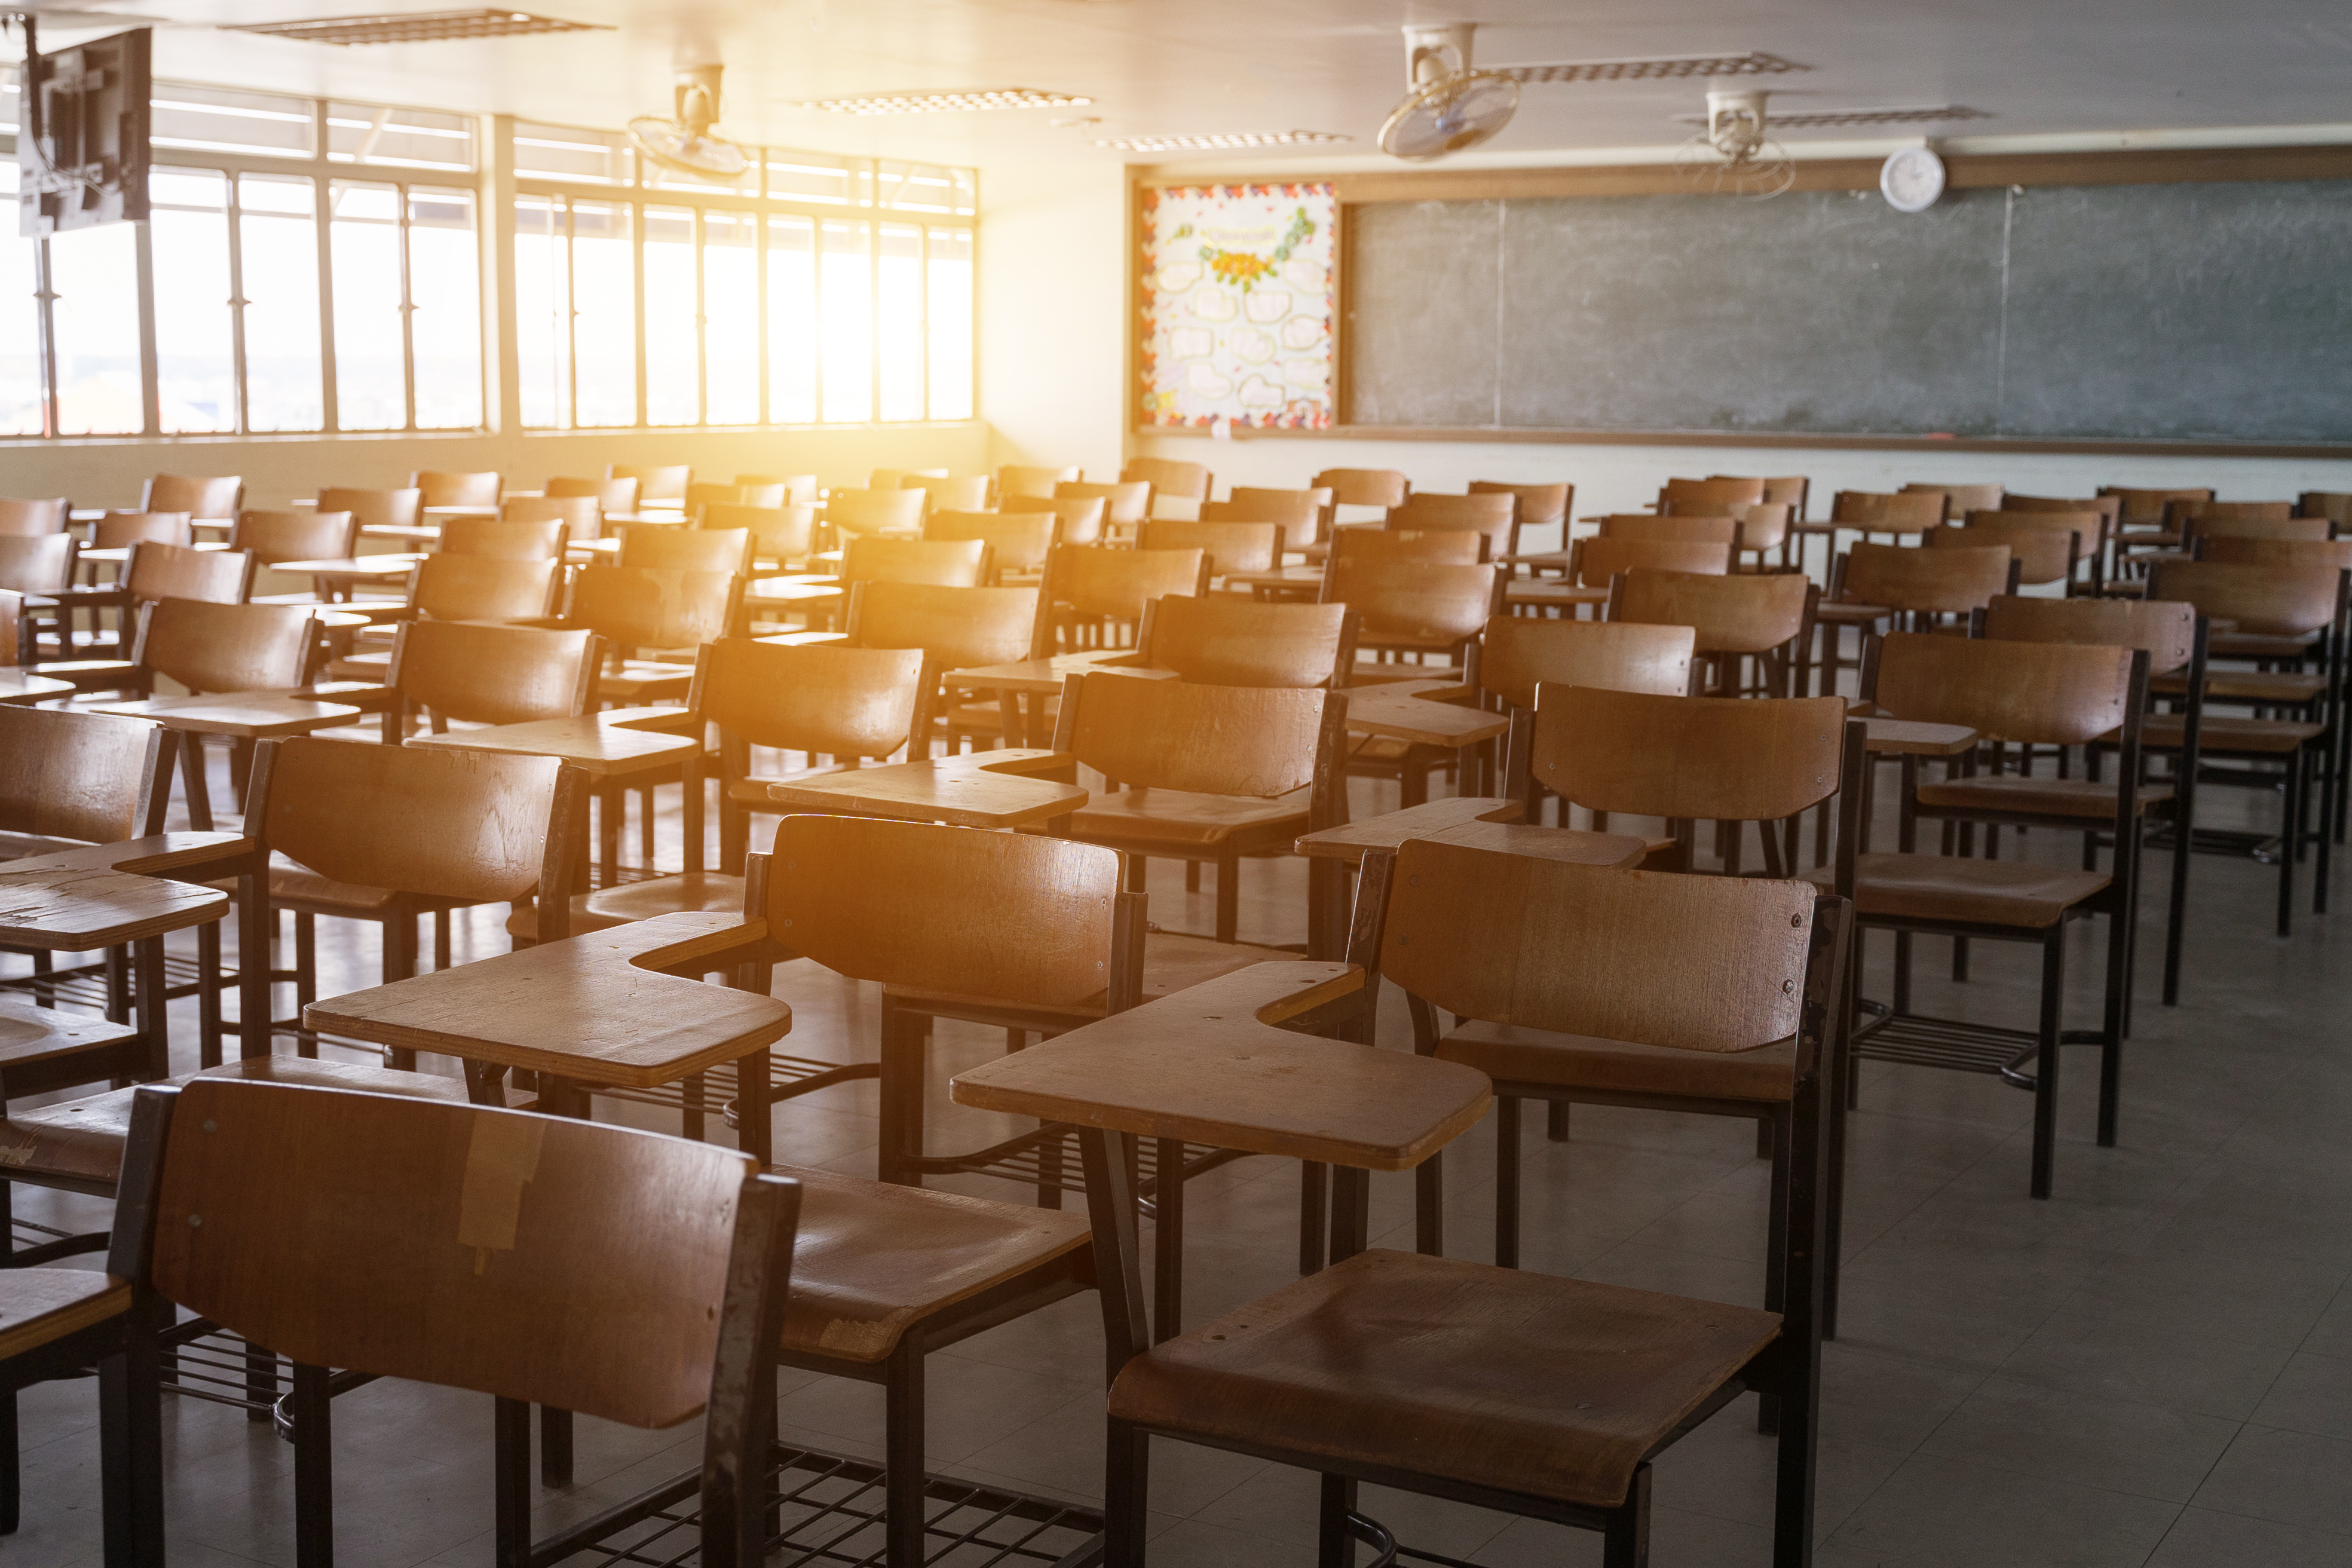 As the sun goes down, an empty classroom with wooden chairs and a blackboard in behind.